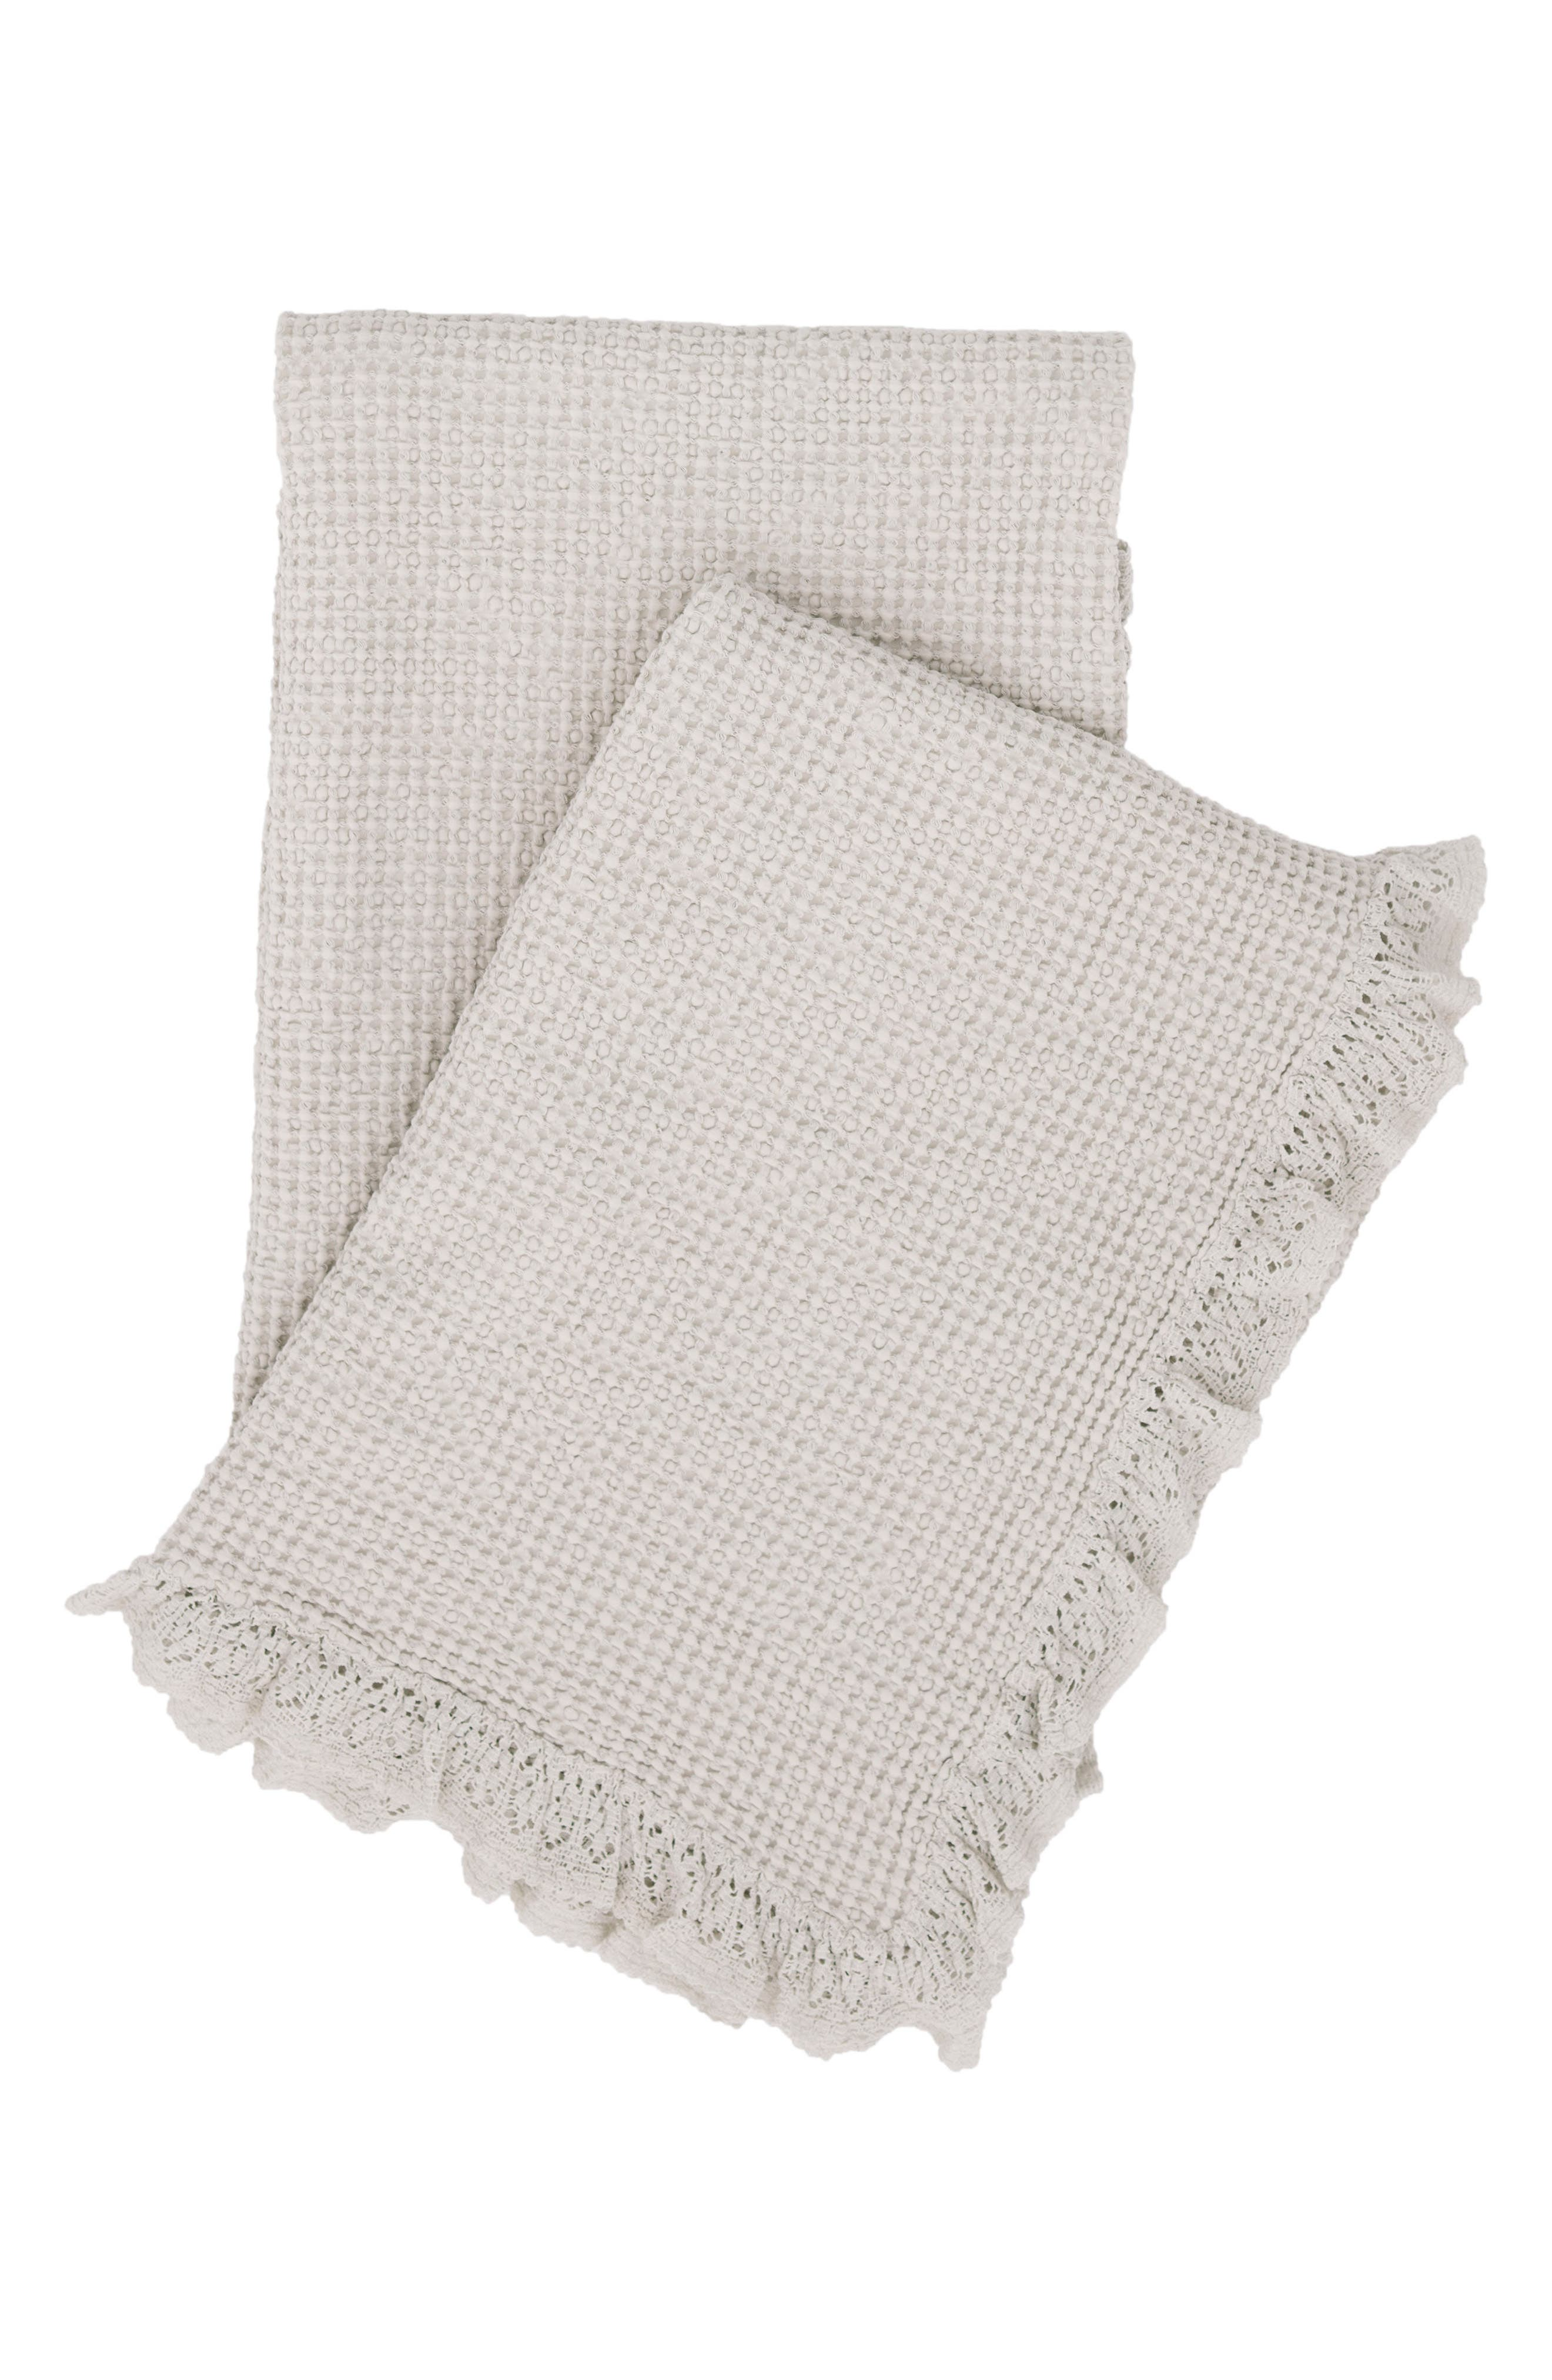 Main Image - Pine Cone Hill Lace Ruffle Throw